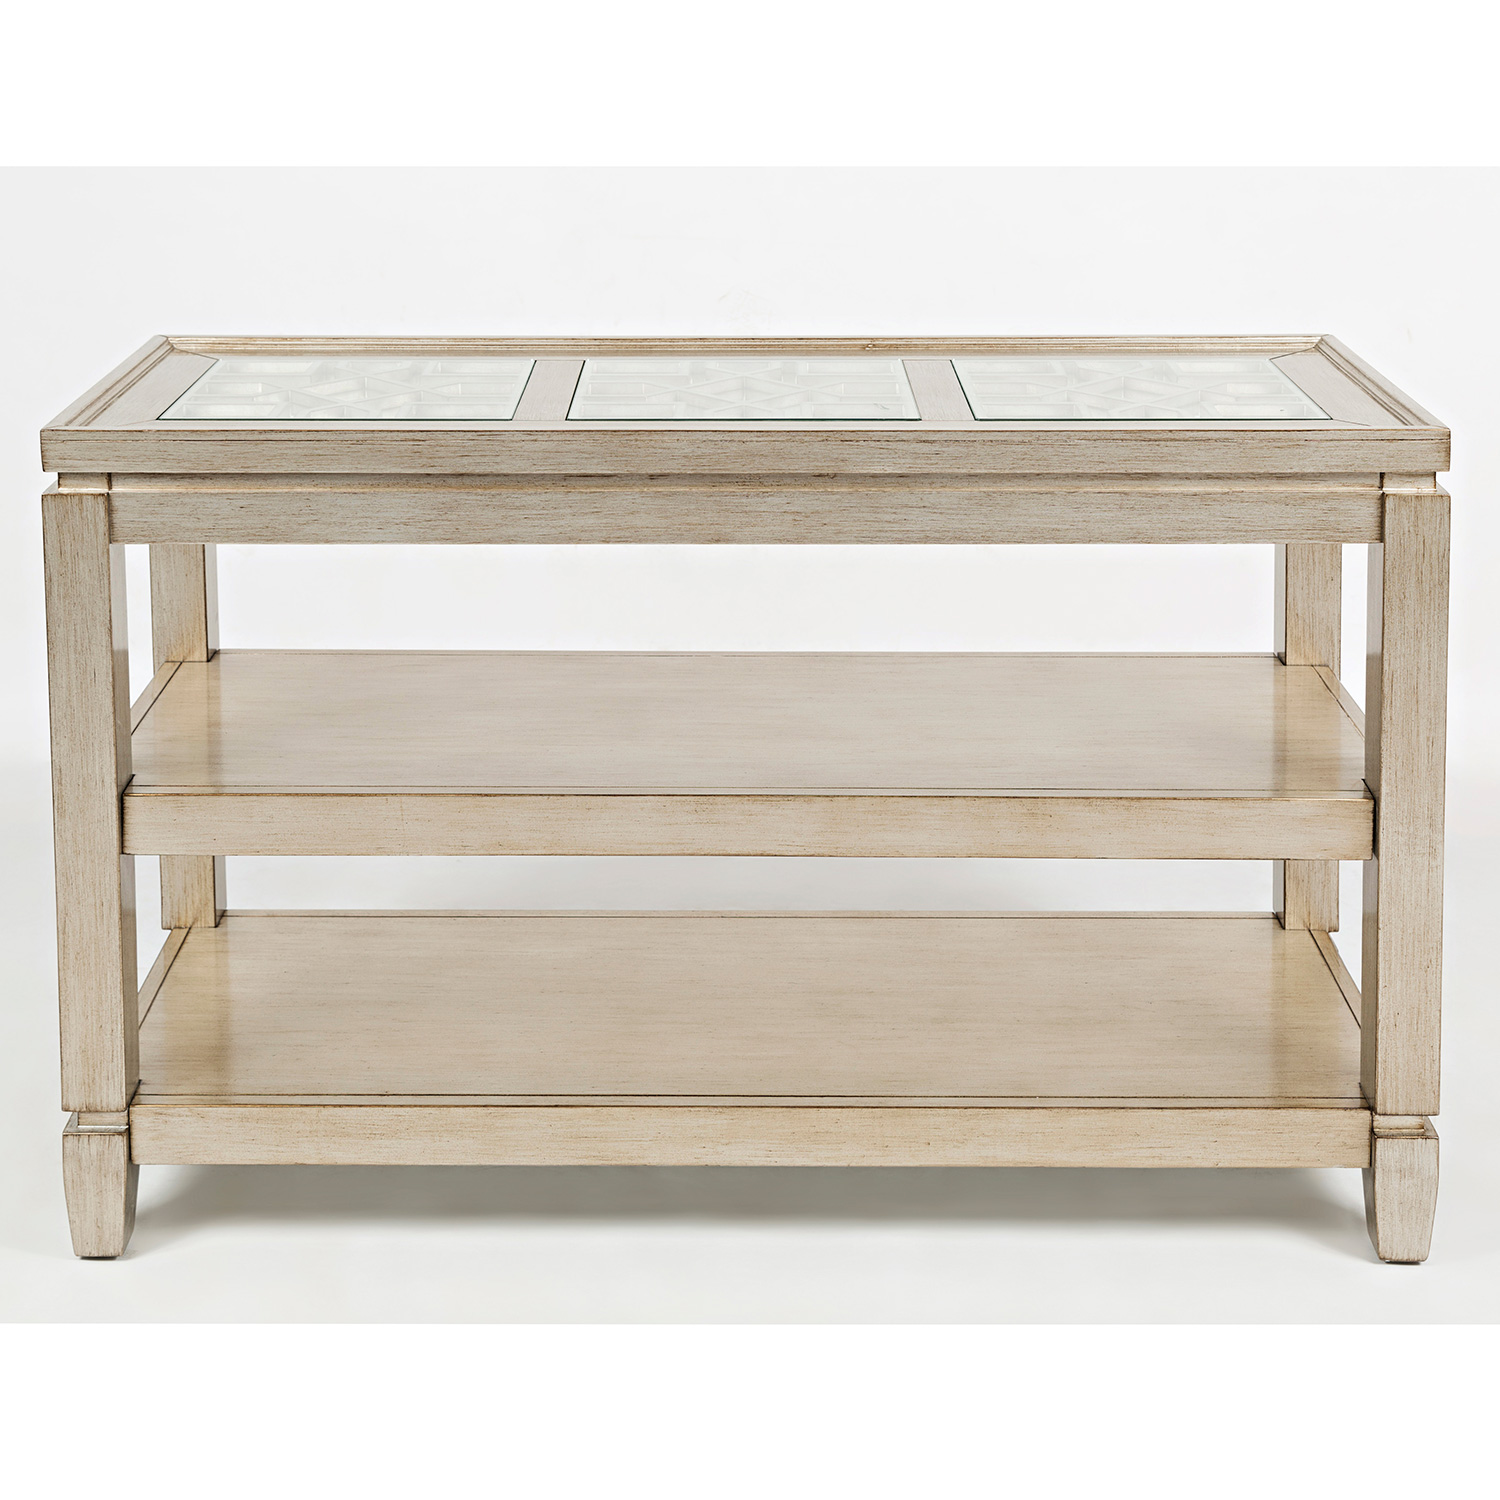 Jofran 1551 4 Casa Bella Sofa Table in Vintage Silver w Intricate